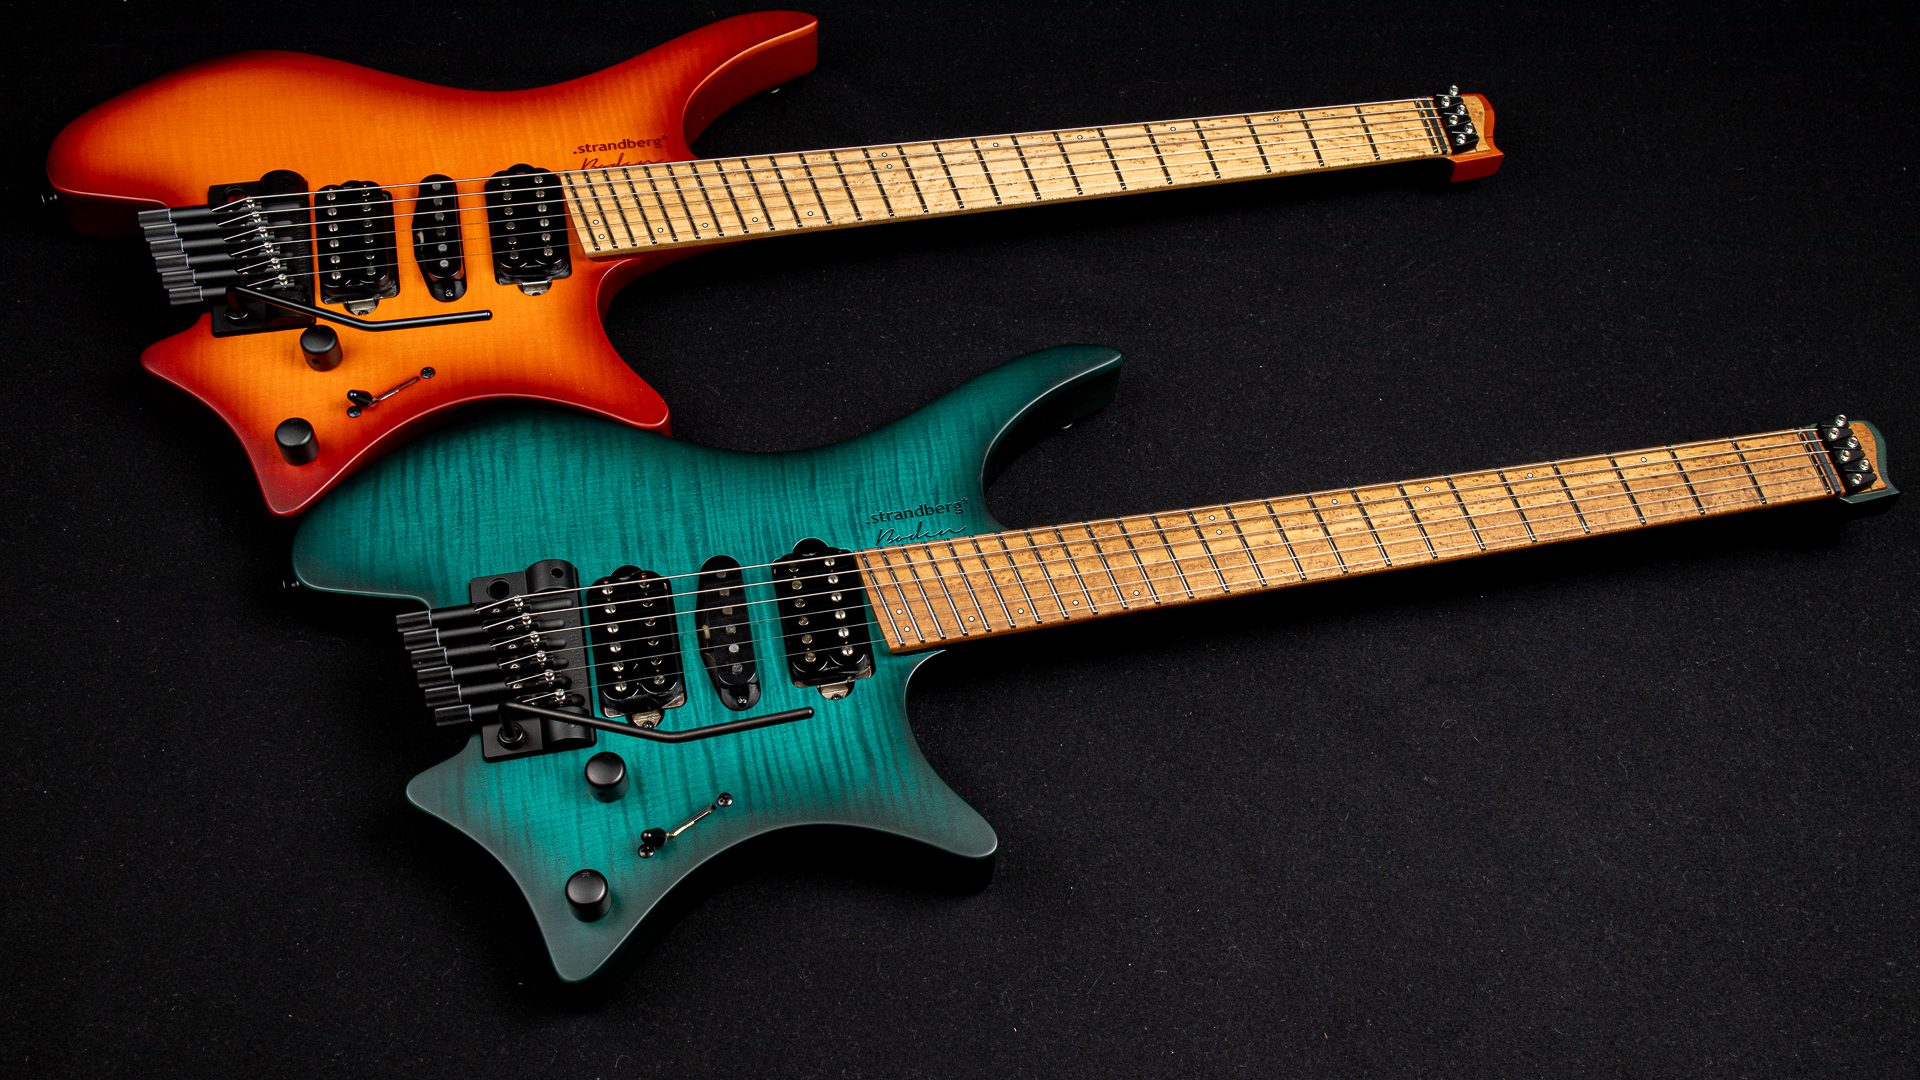 Boden Neck Through headless guitars orange and trans teal side by side